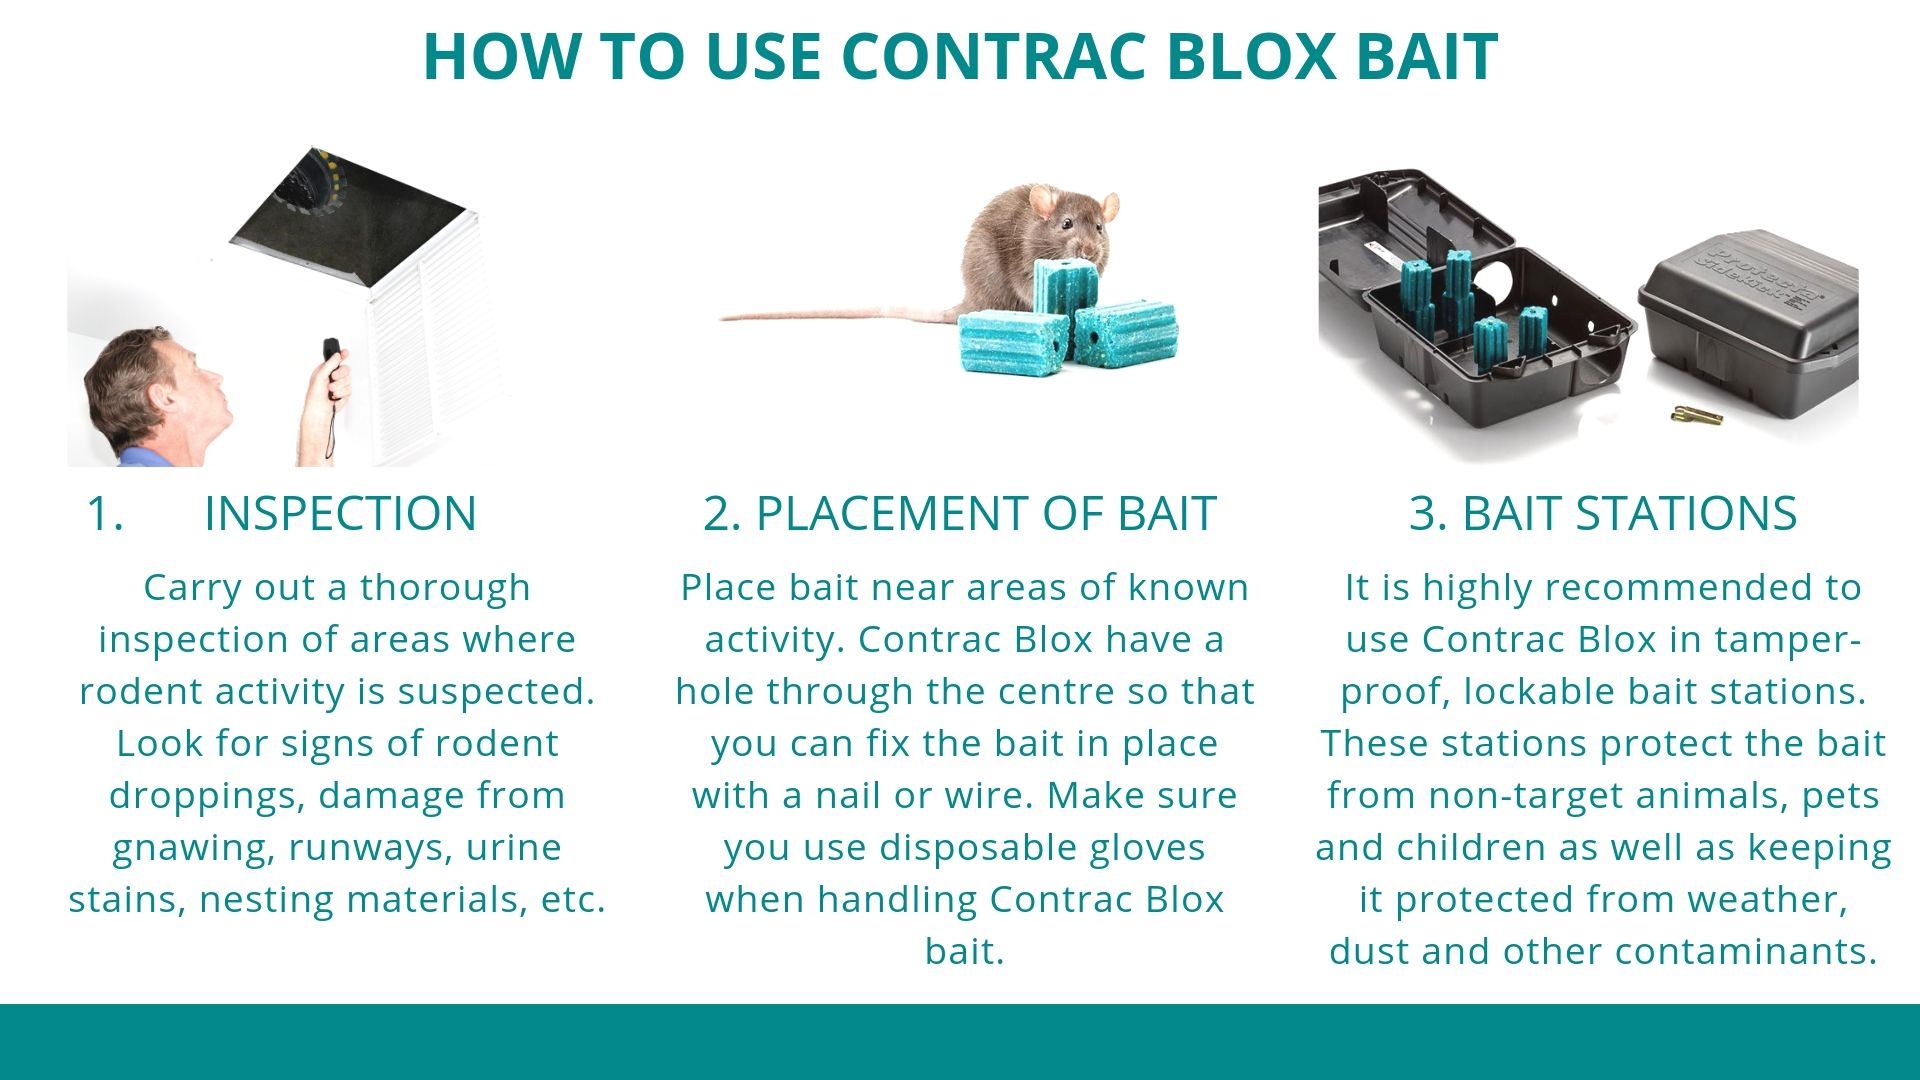 How to use Contrac Blox Bait